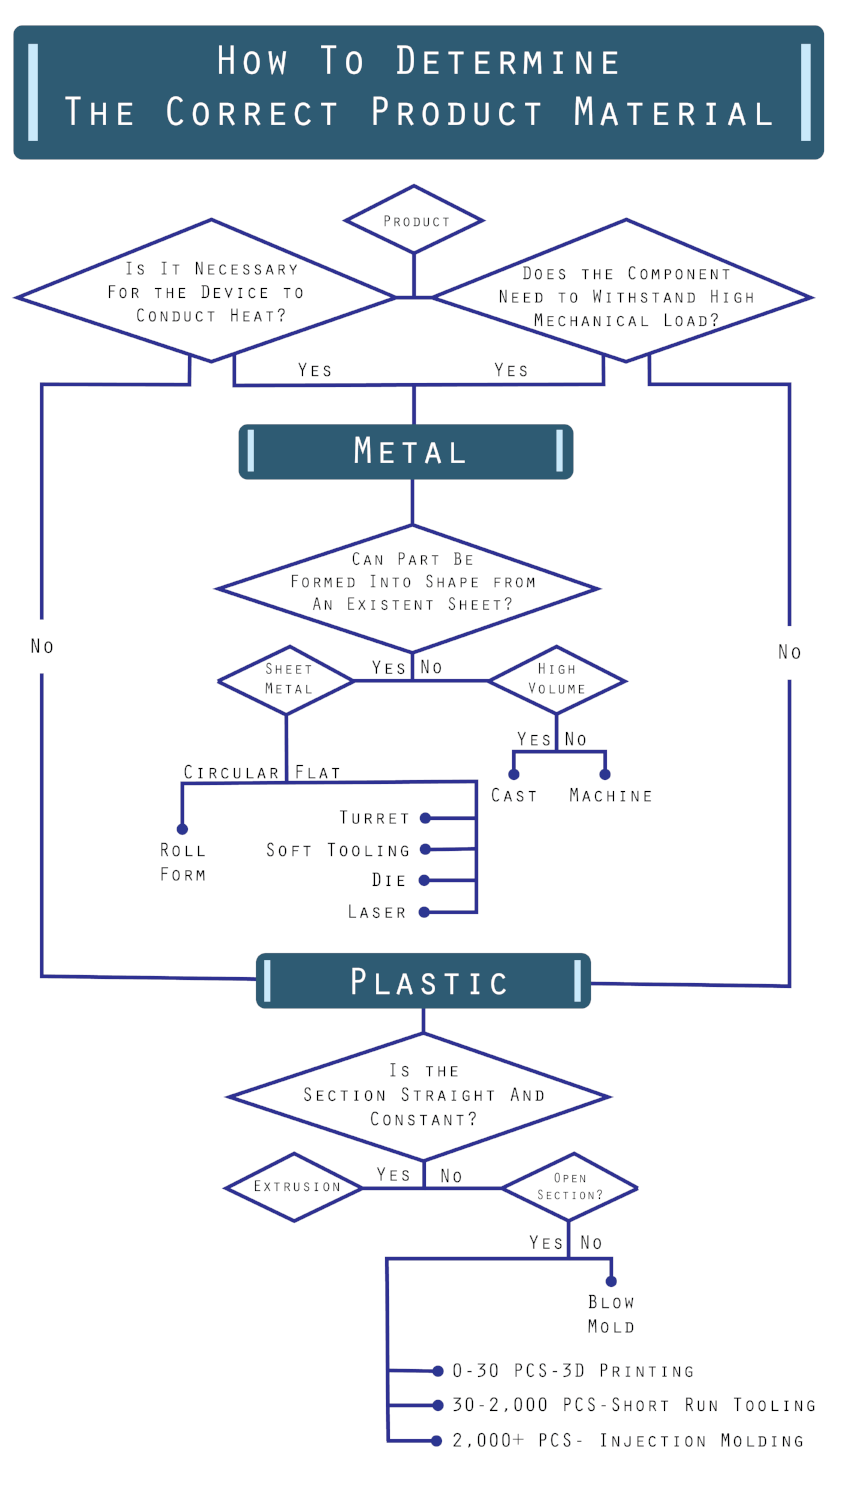 Material Selection in Manufacturing: Plastic or Metal